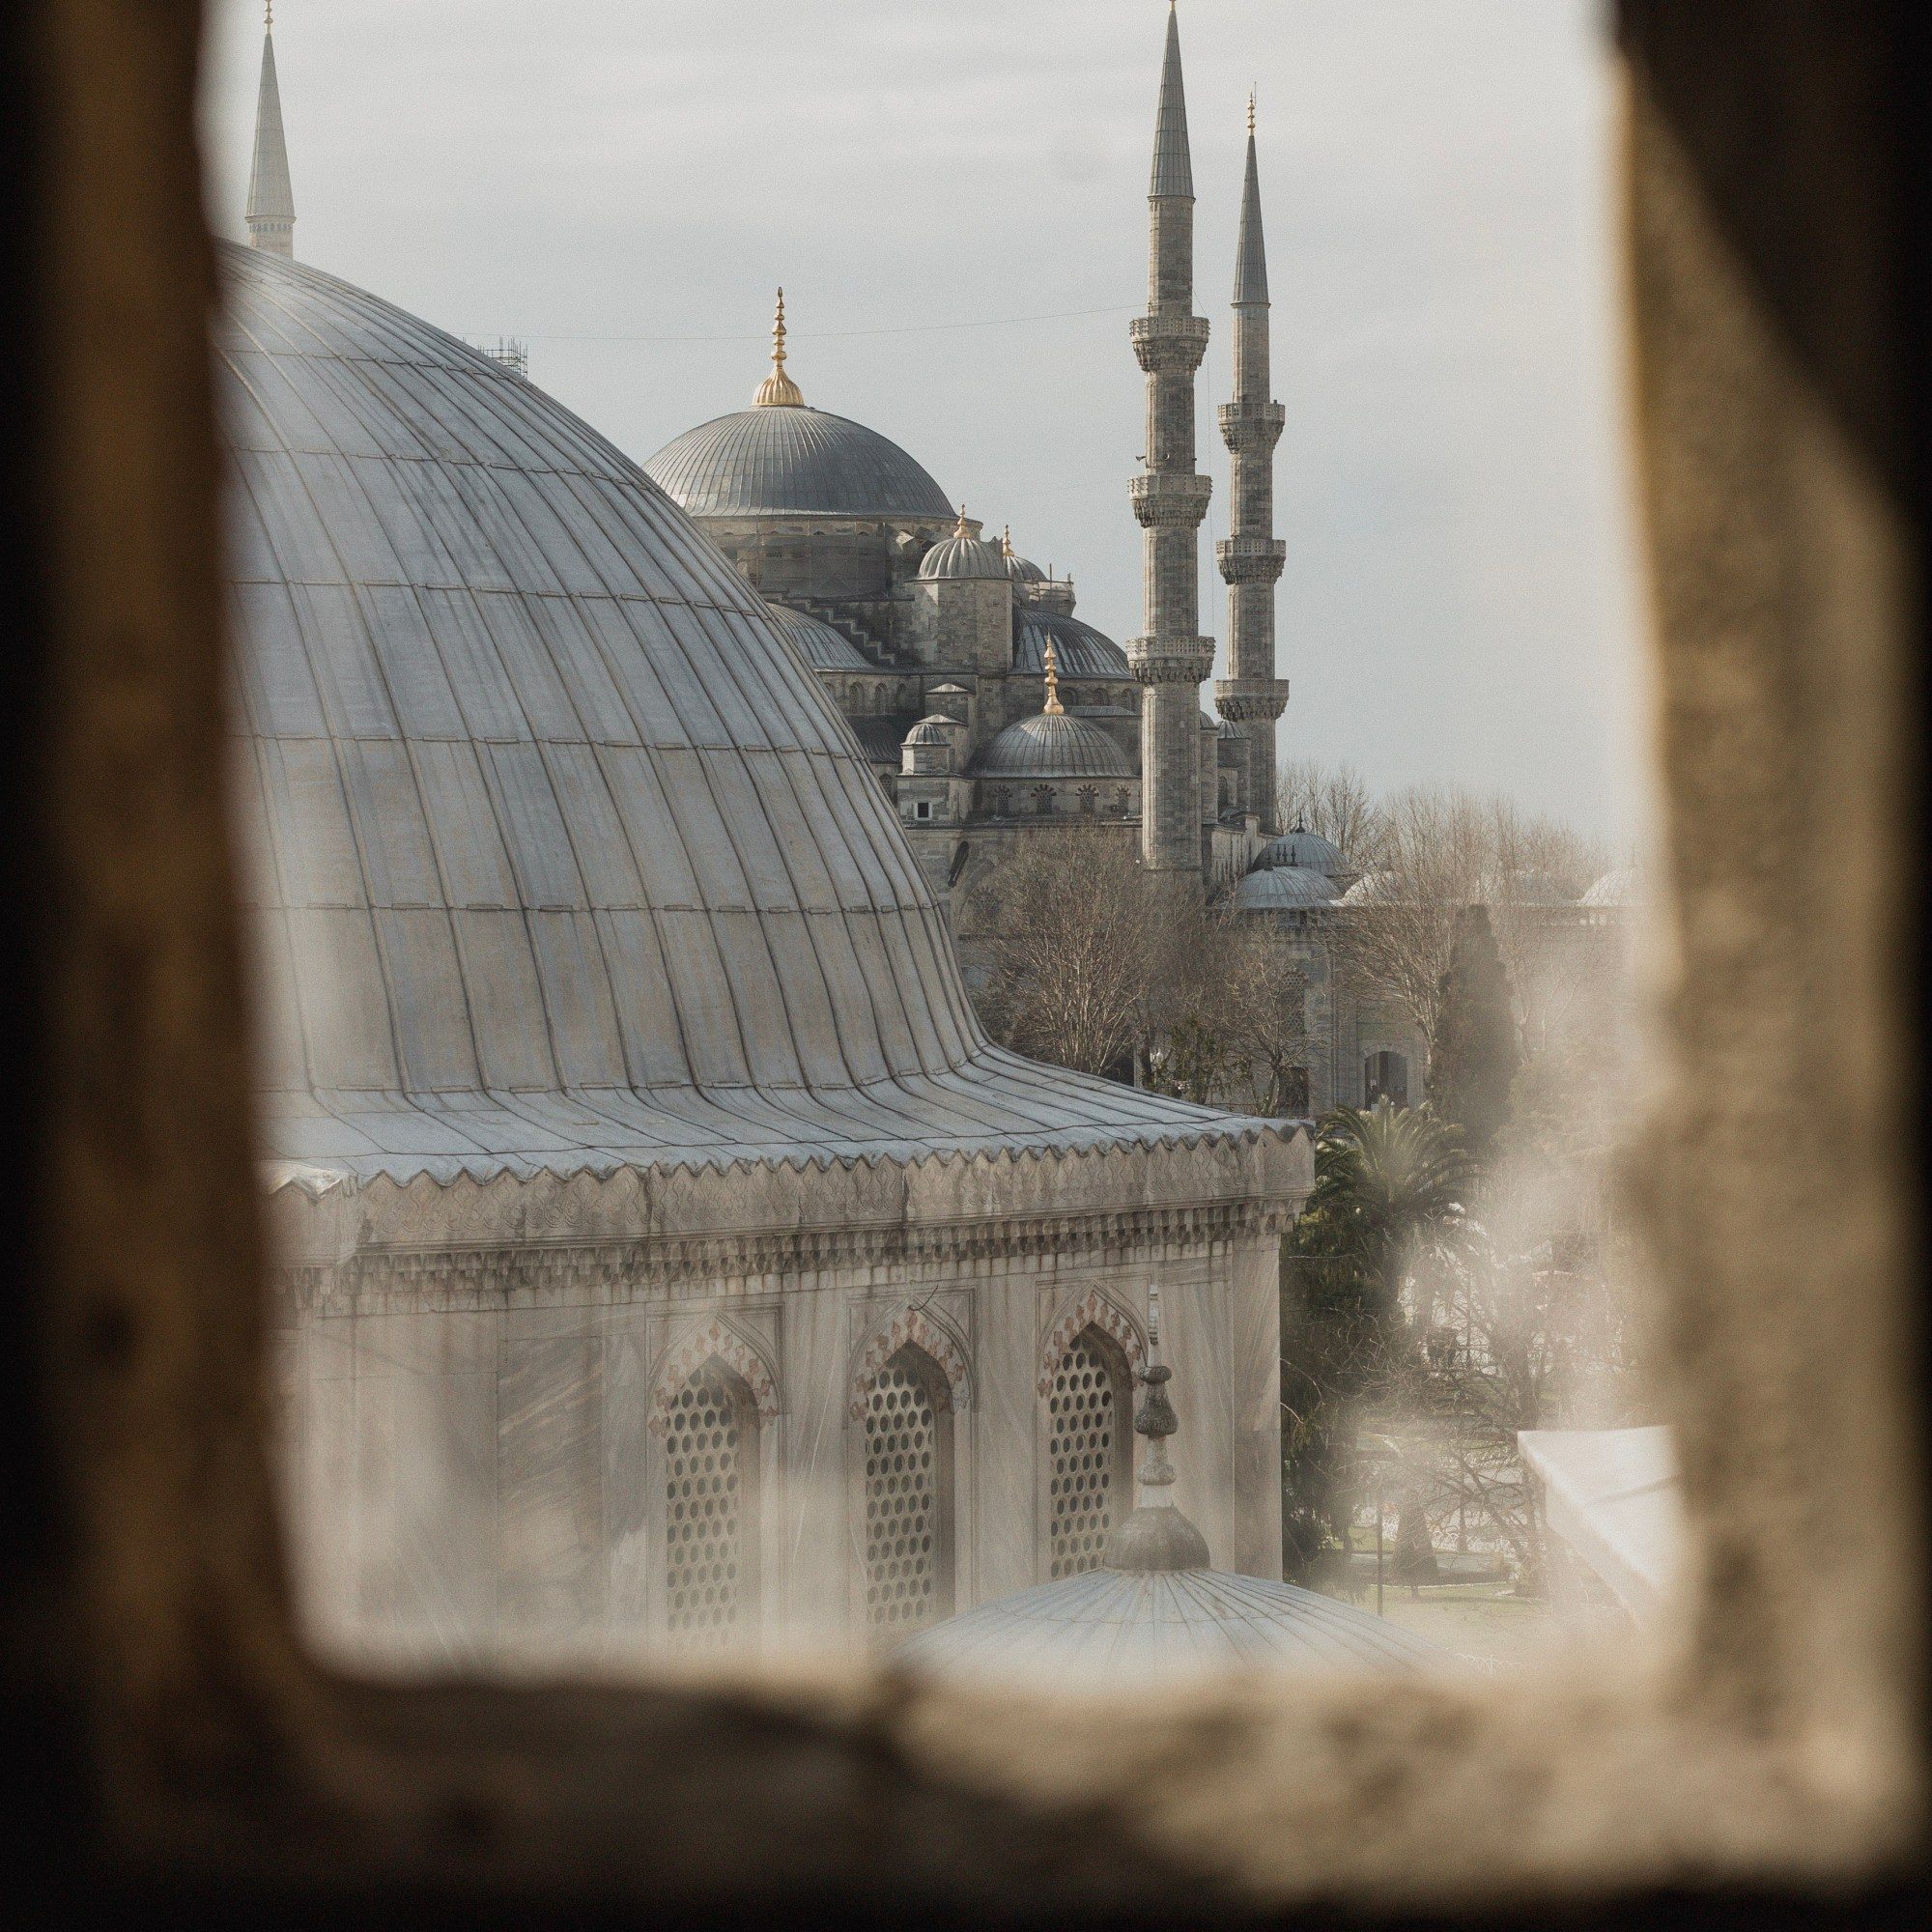 Illustrated by Sade - Window view of the Blue Mosque from inside the Hagia Sophia